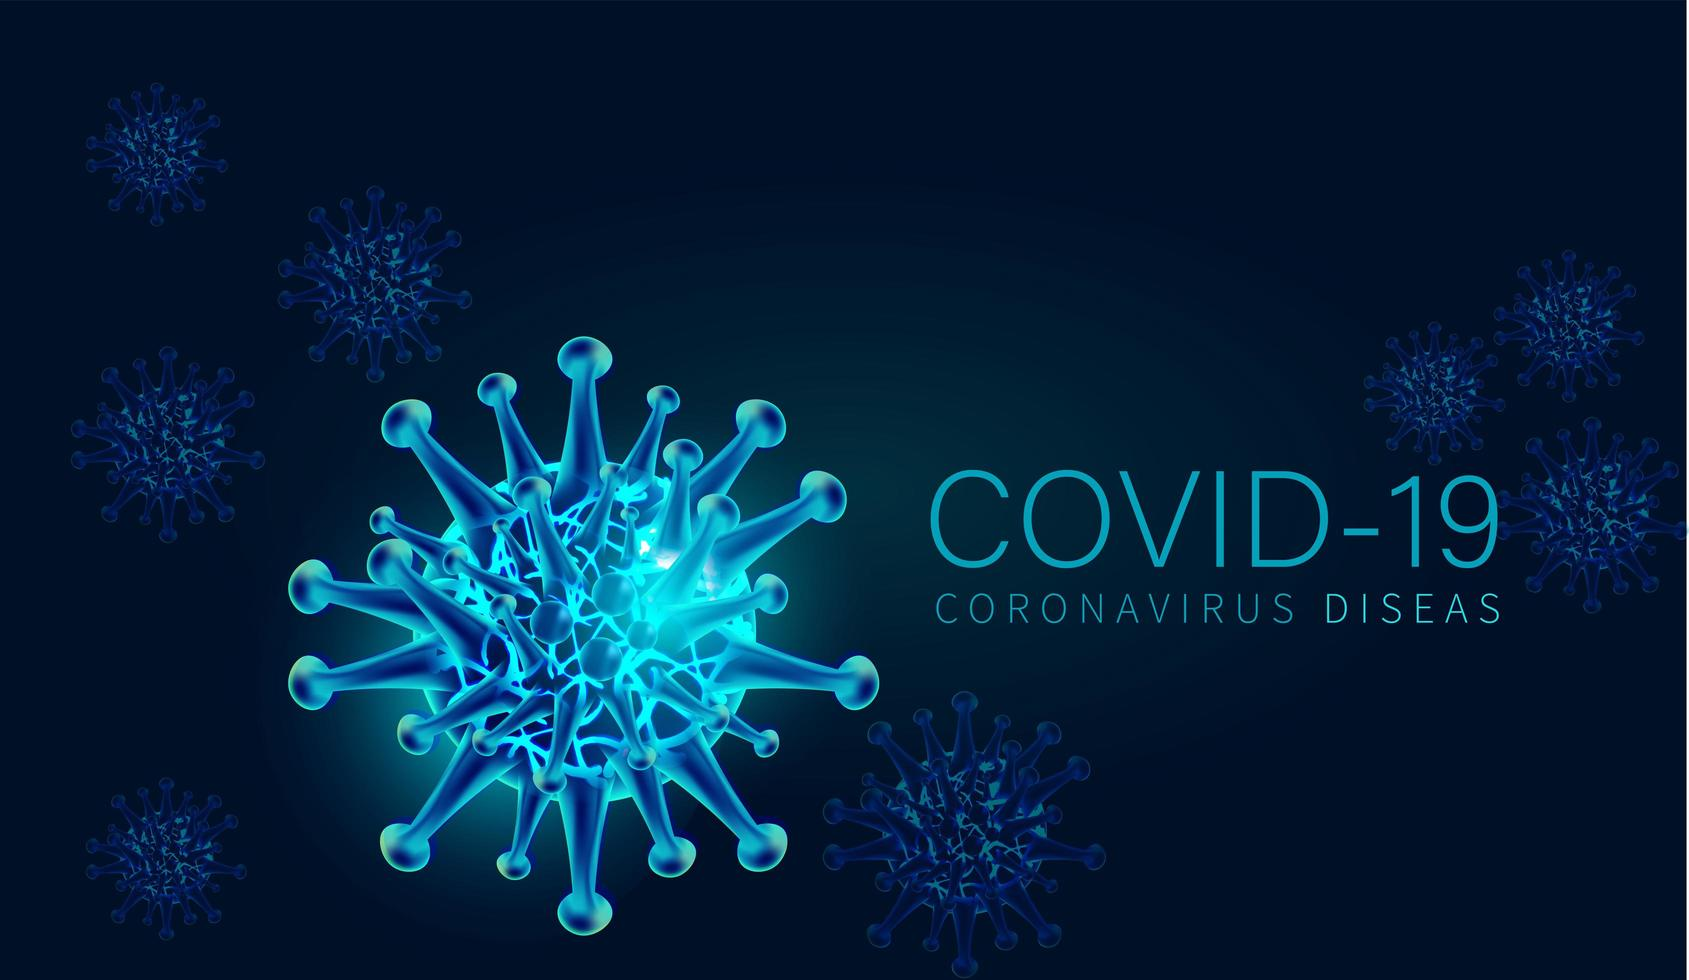 Blue COVID-19 Cell Background vector